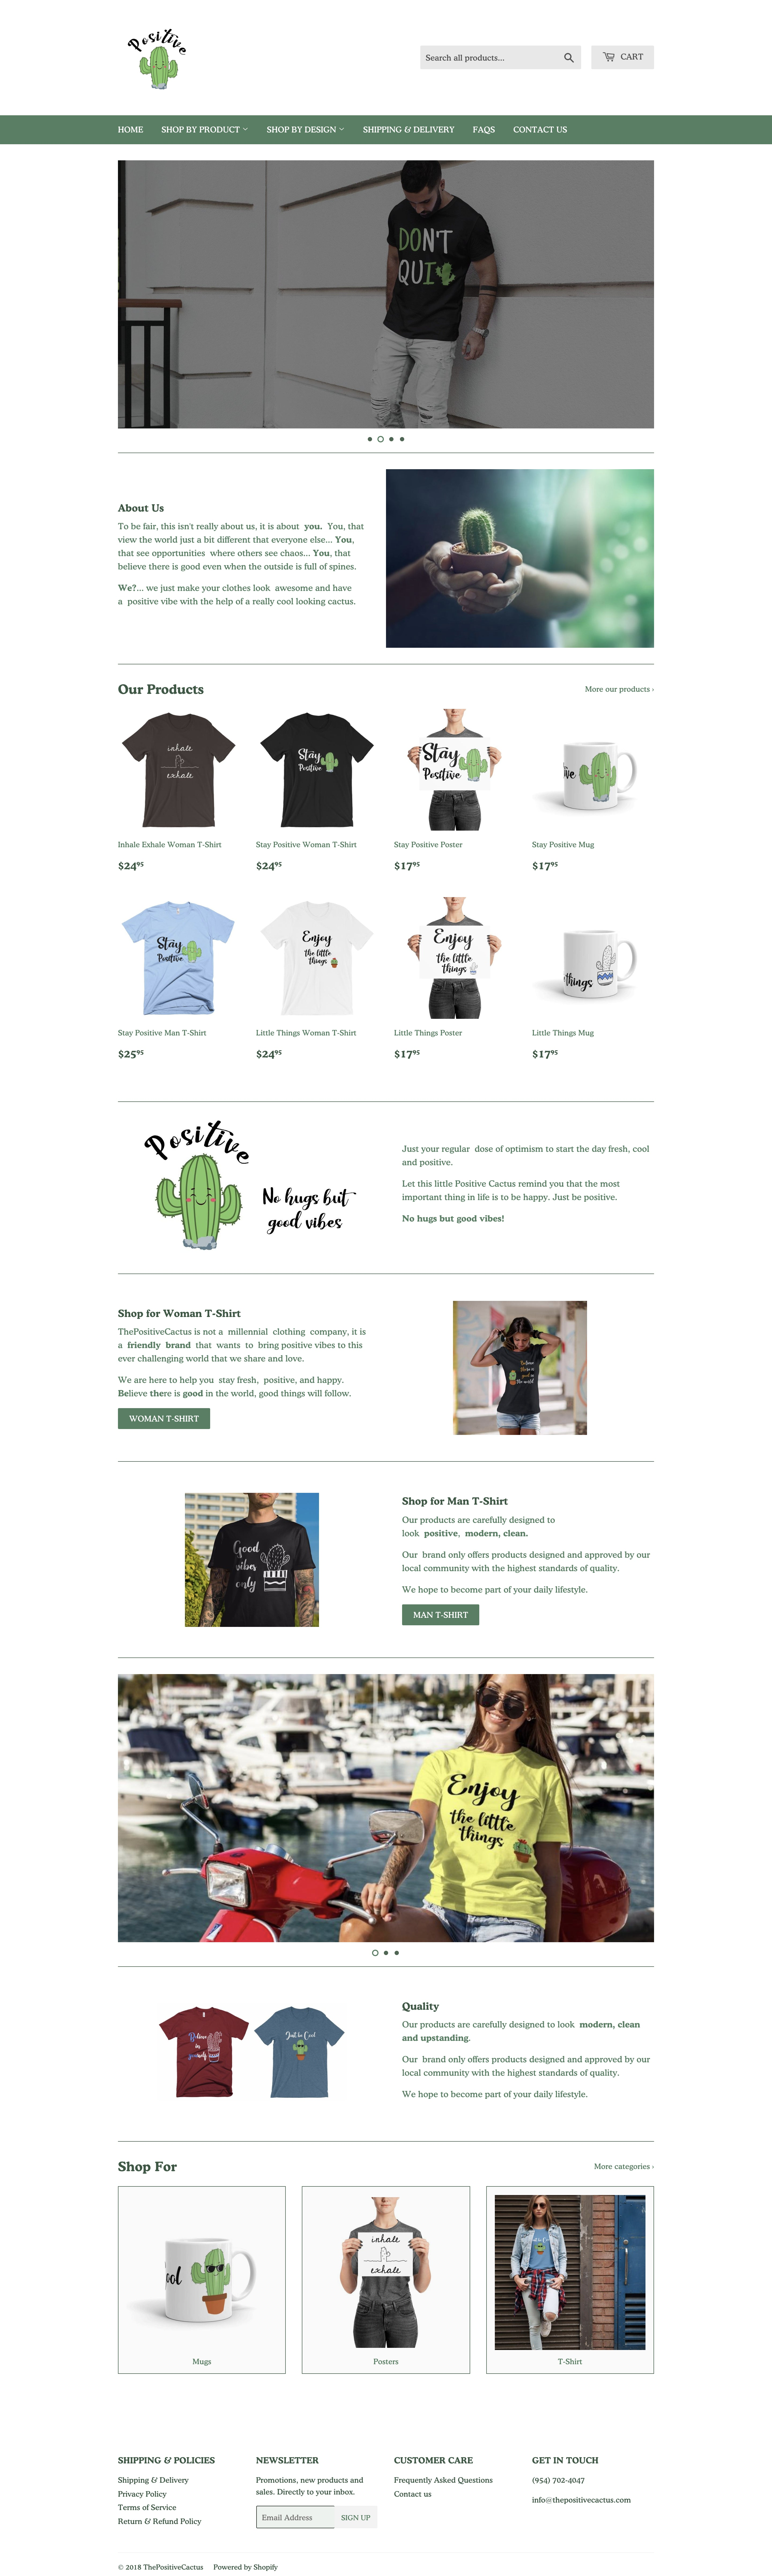 ThePositiveCactus Printing On Demand Shopify Store with Tremendous Growth Opportunity Screenshot - 2